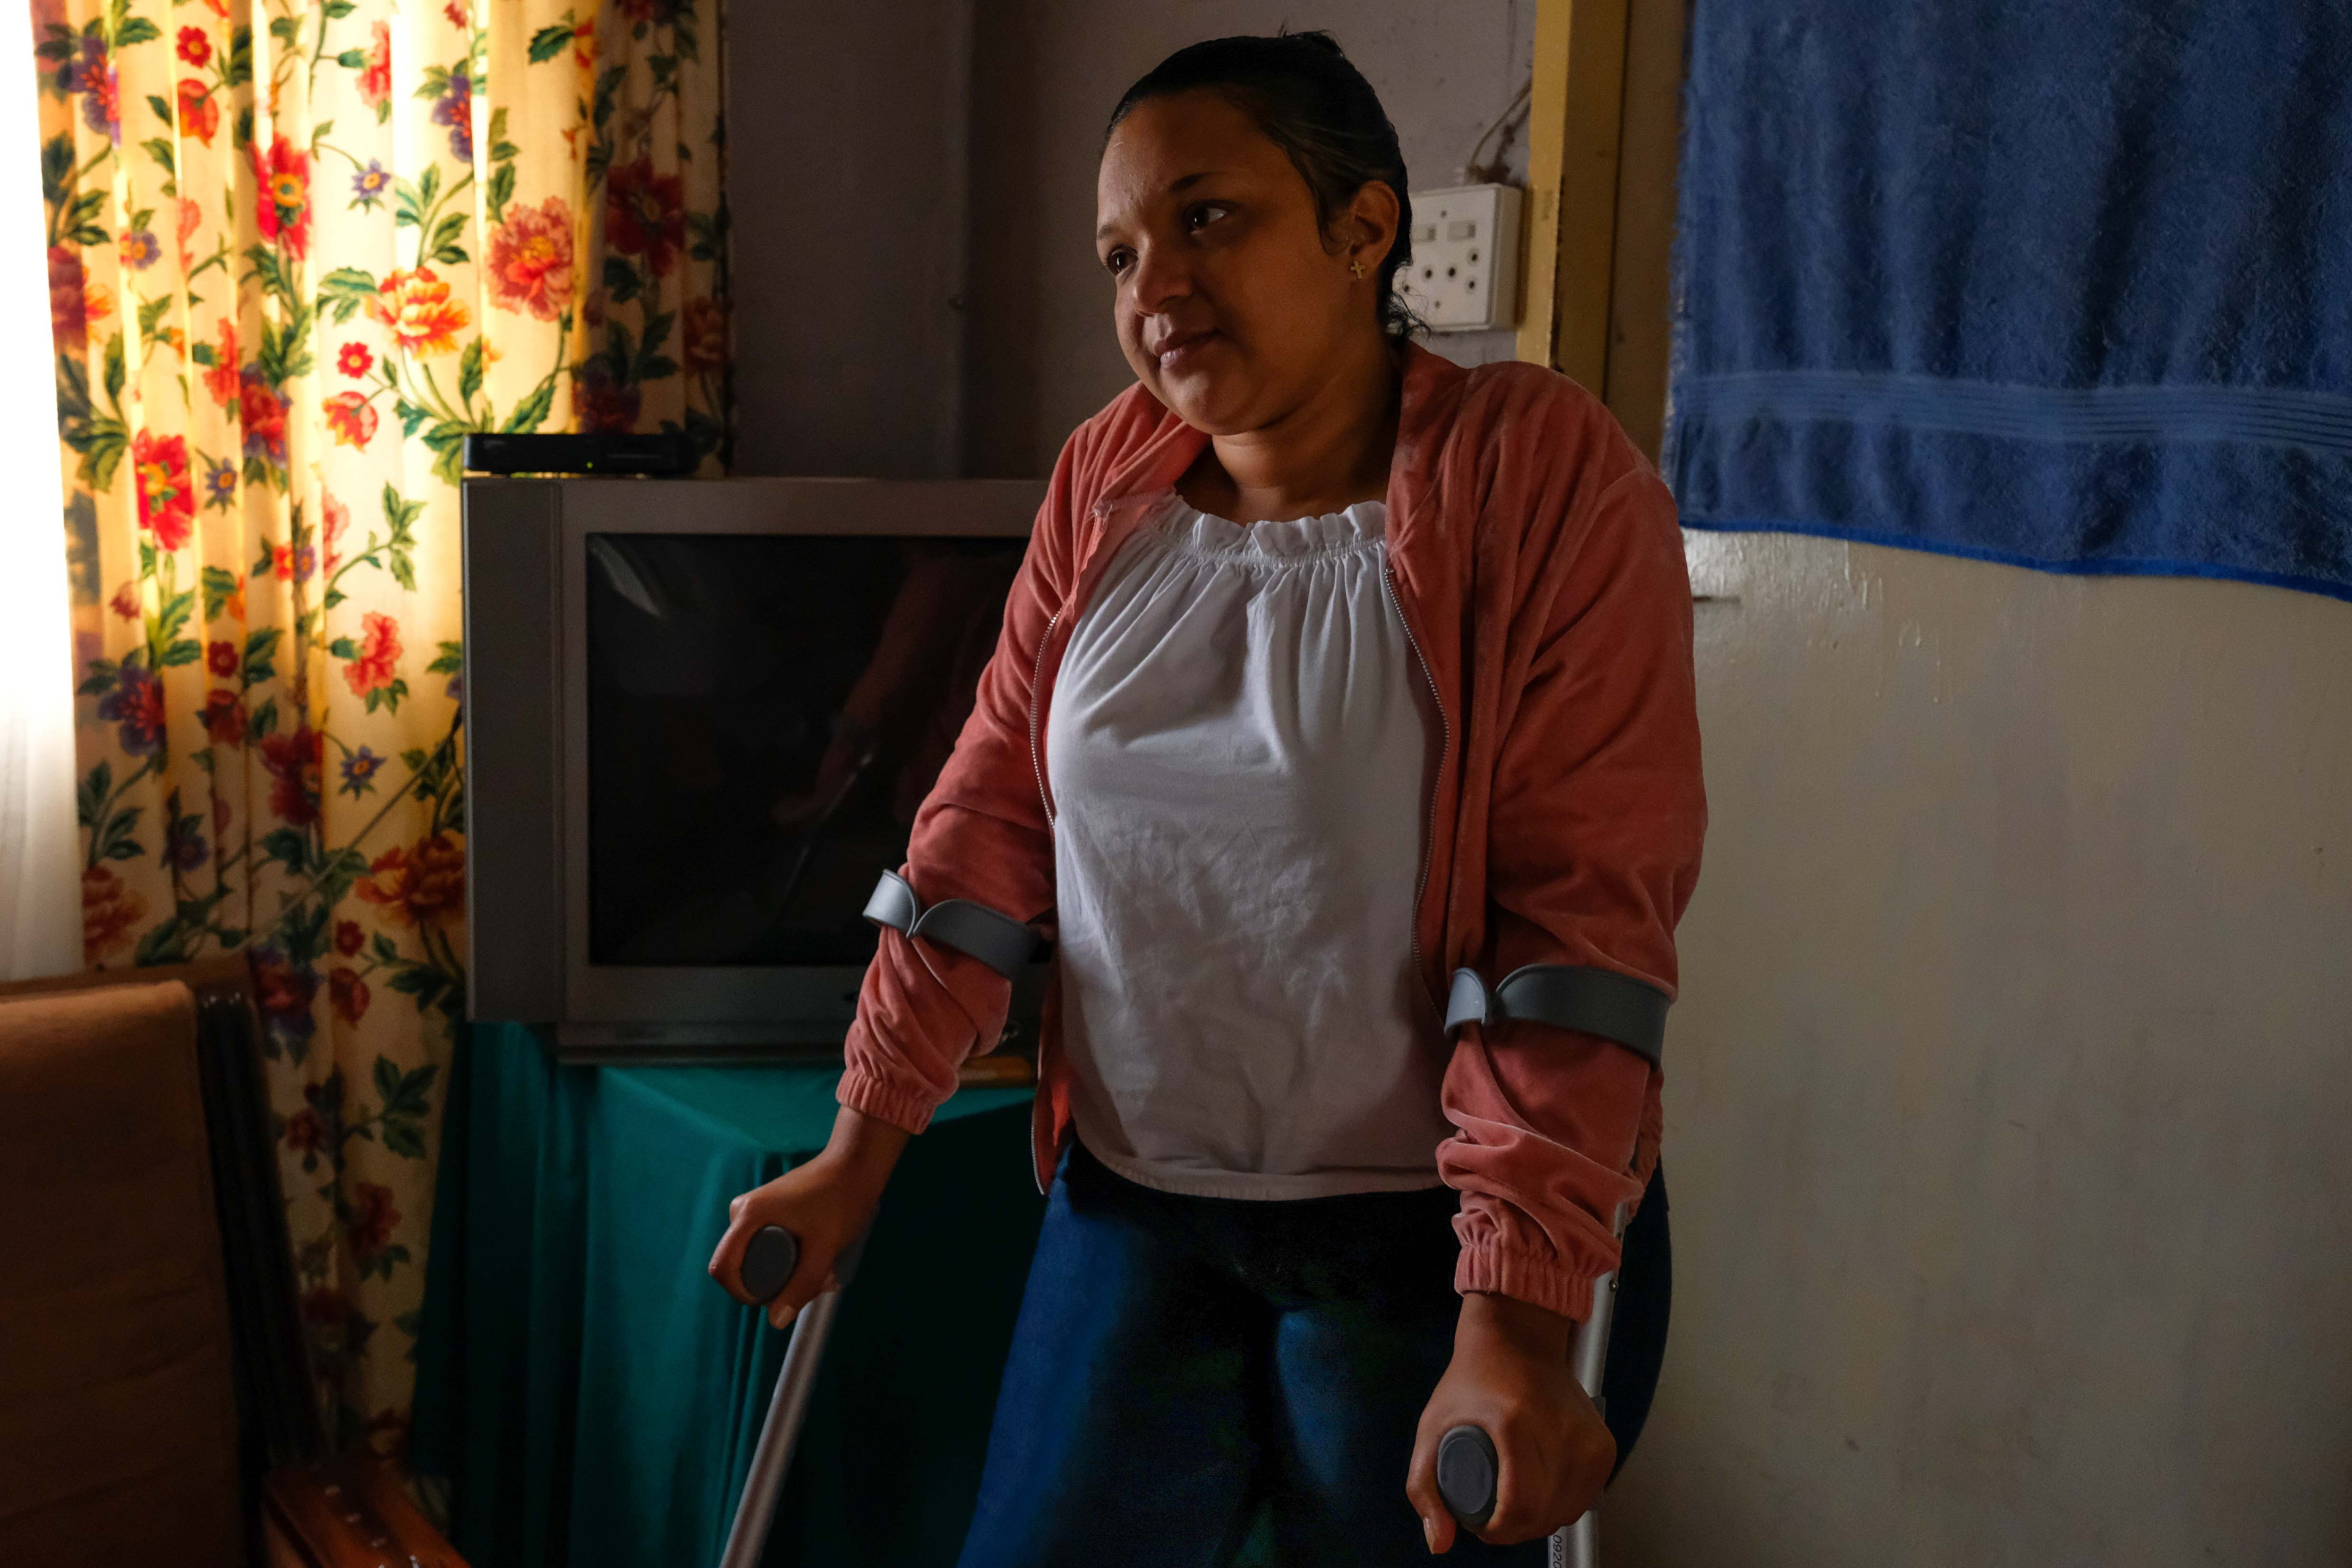 13 April 2019: Priscilla Josi was shot in the leg while attempting to flee when police and other security officials opened fire on protesters in Caledon in the Western Cape.